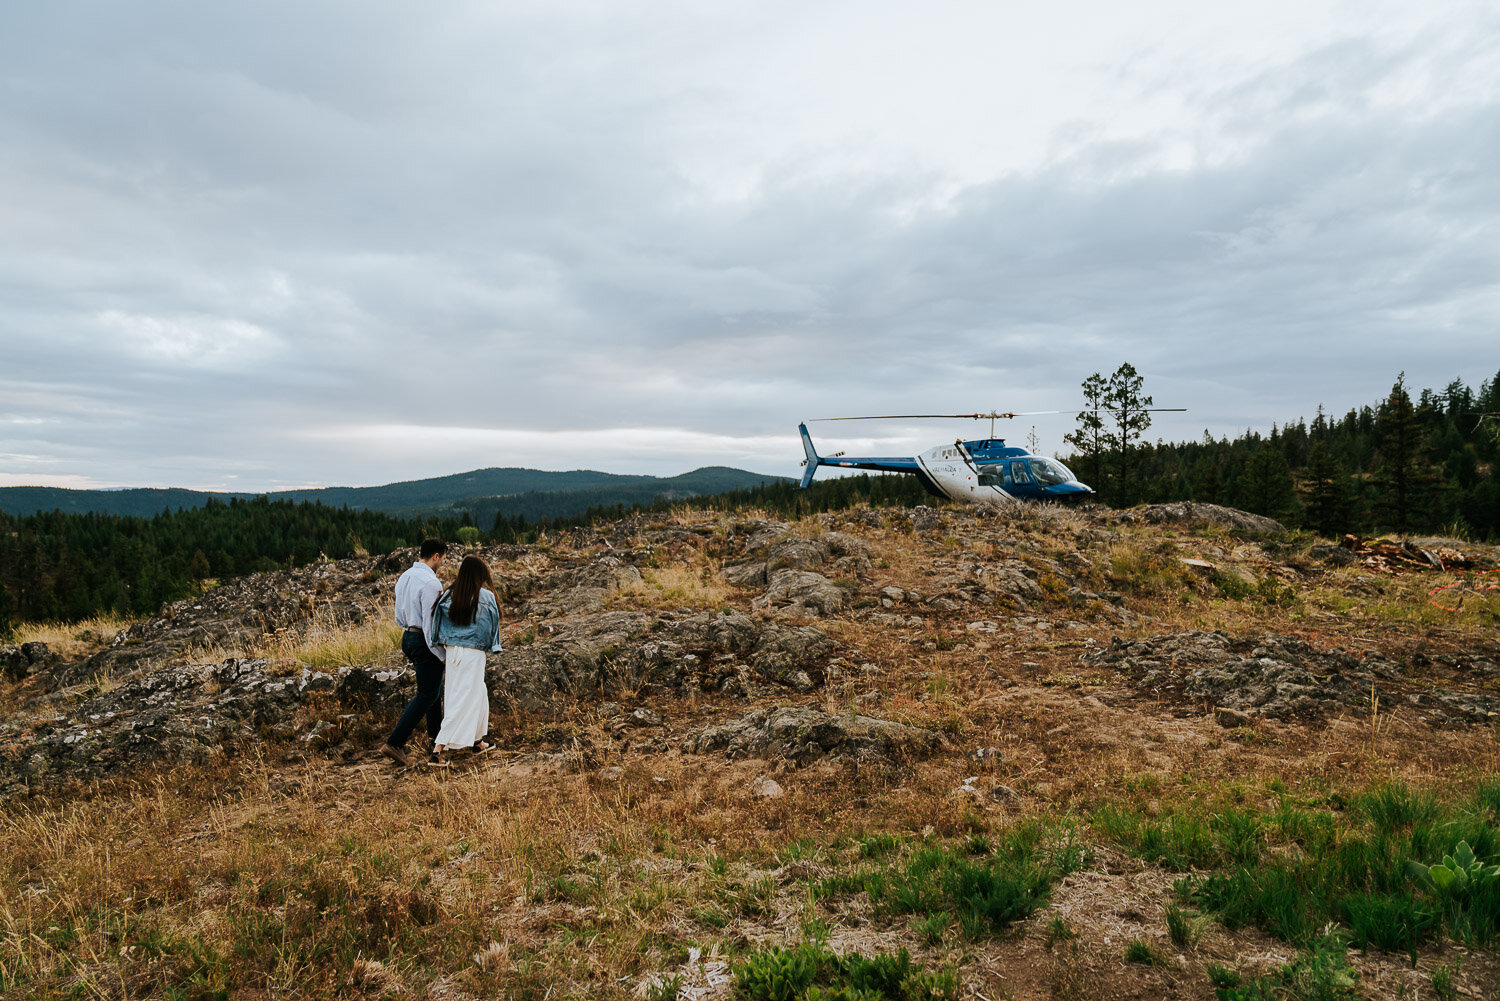 kelowna-helicopter-engagement-shoot-25.jpg